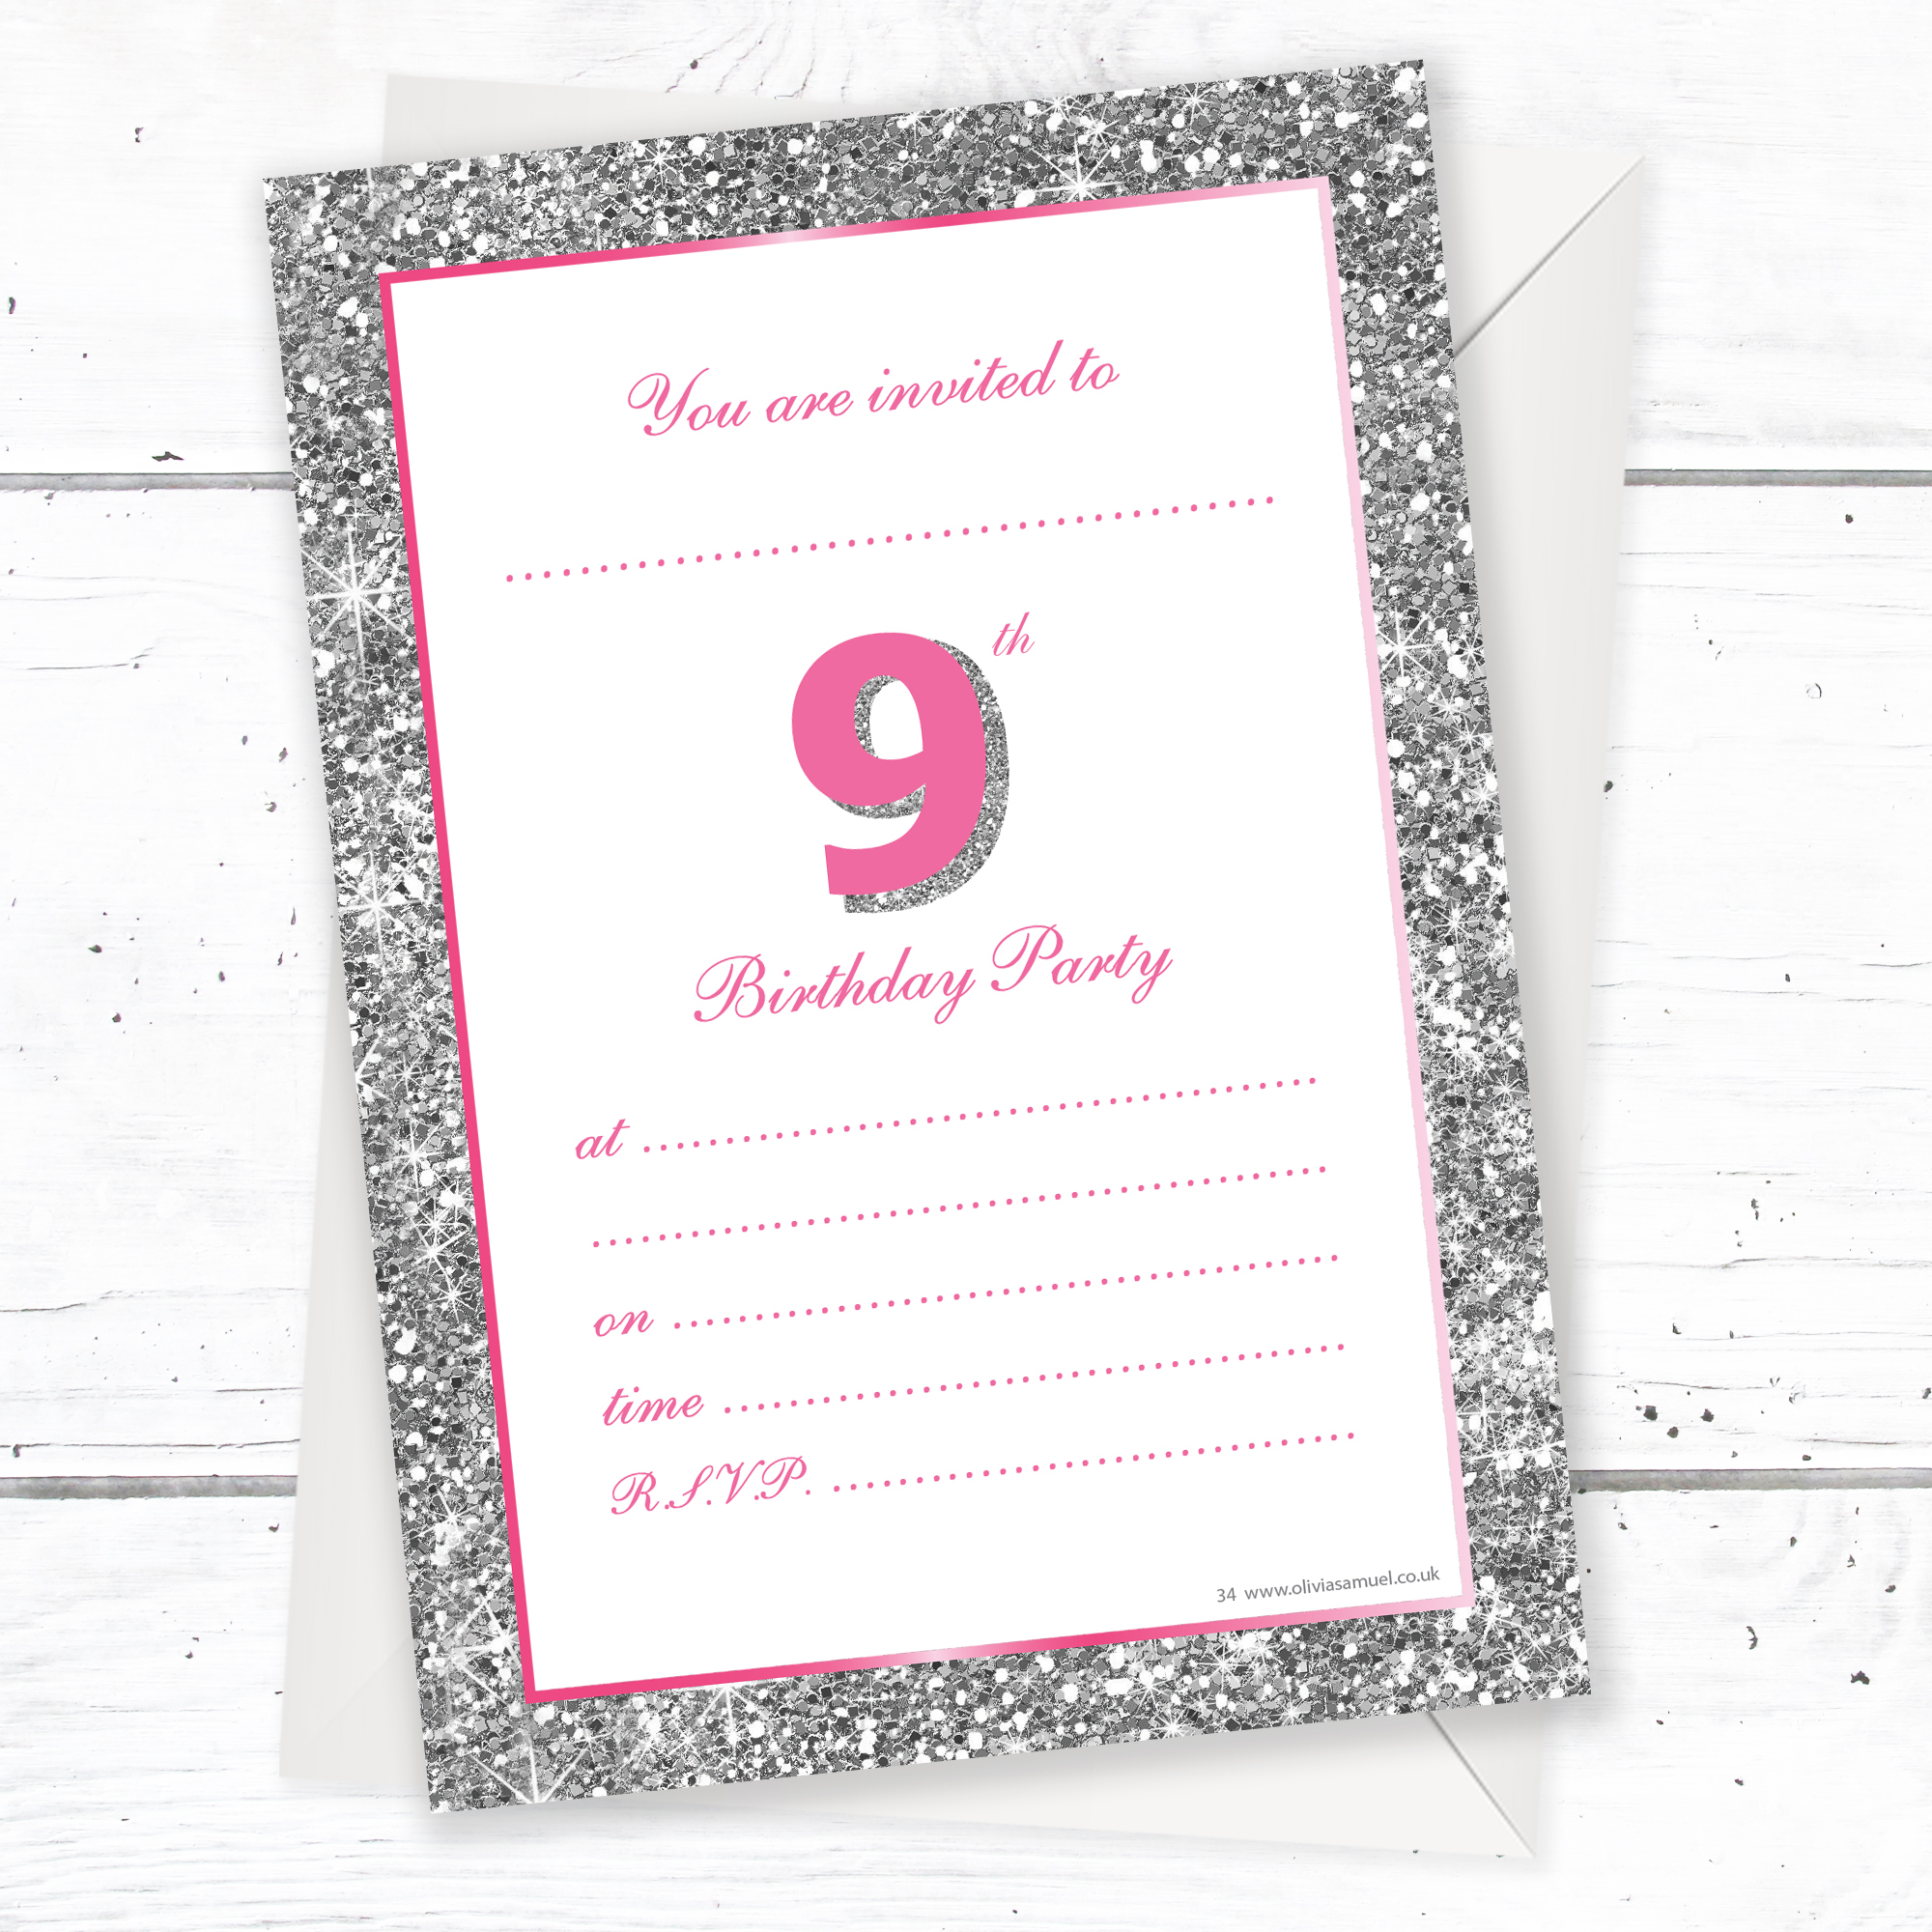 9th Birthday Party Invitations Girl RTW0034 Home Kids